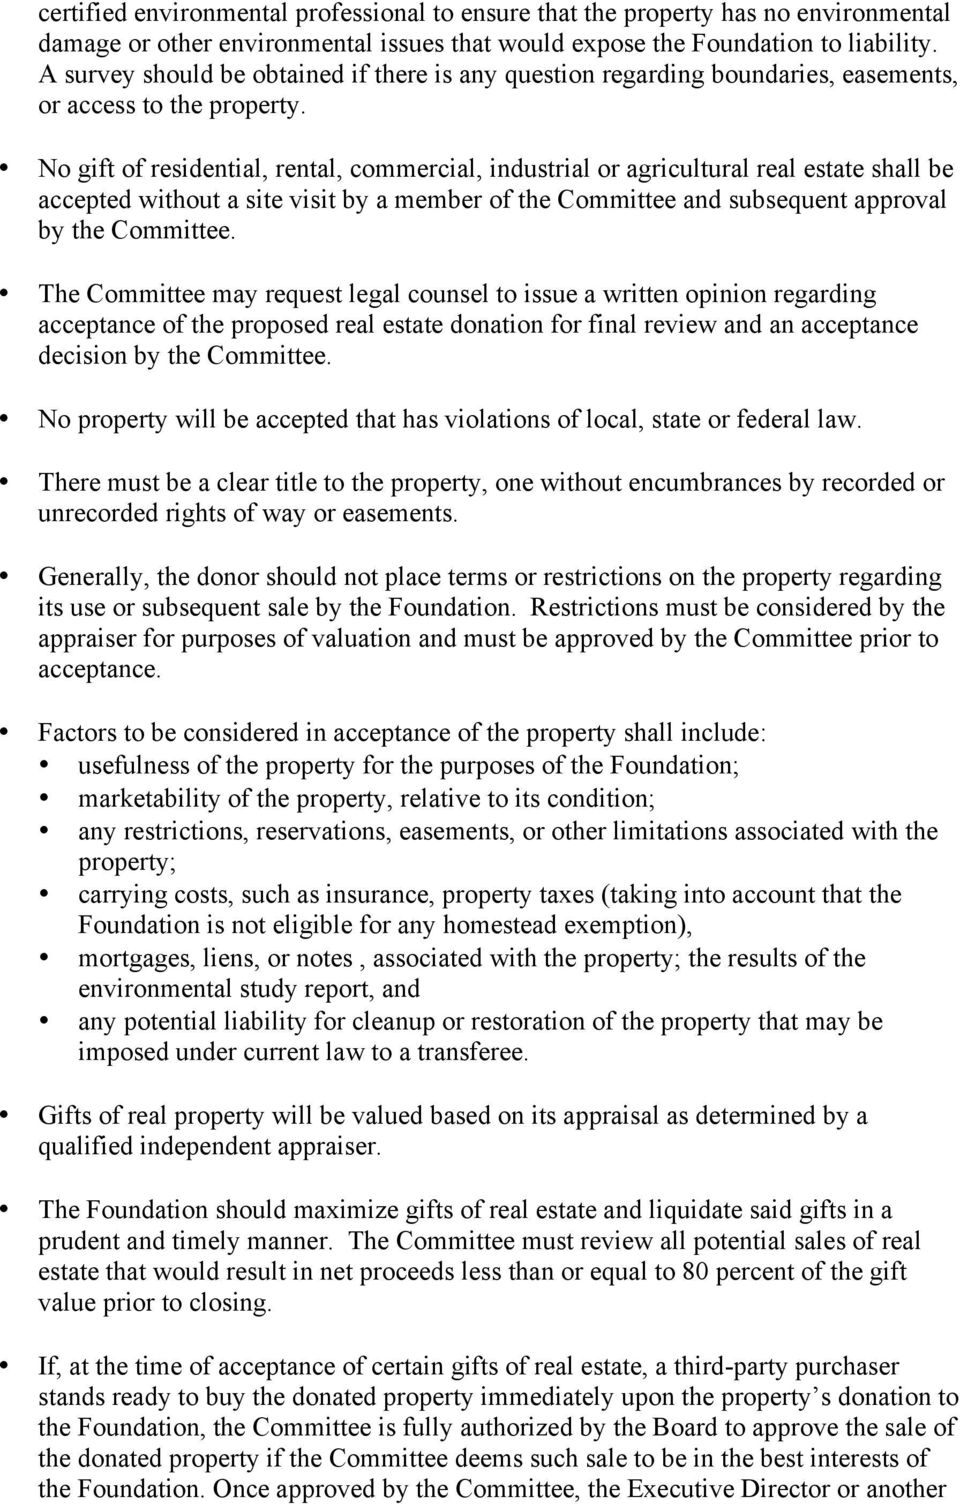 No gift of residential, rental, commercial, industrial or agricultural real estate shall be accepted without a site visit by a member of the Committee and subsequent approval by the Committee.